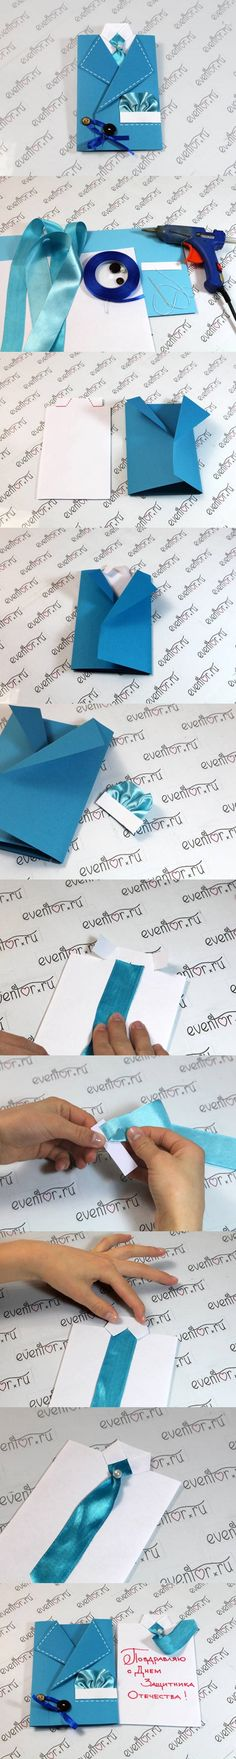 DIY Suit Greeting Card | www.FabArtDIY.com LIKE Us on Facebook == https://www.facebook.com/FabArtDIY